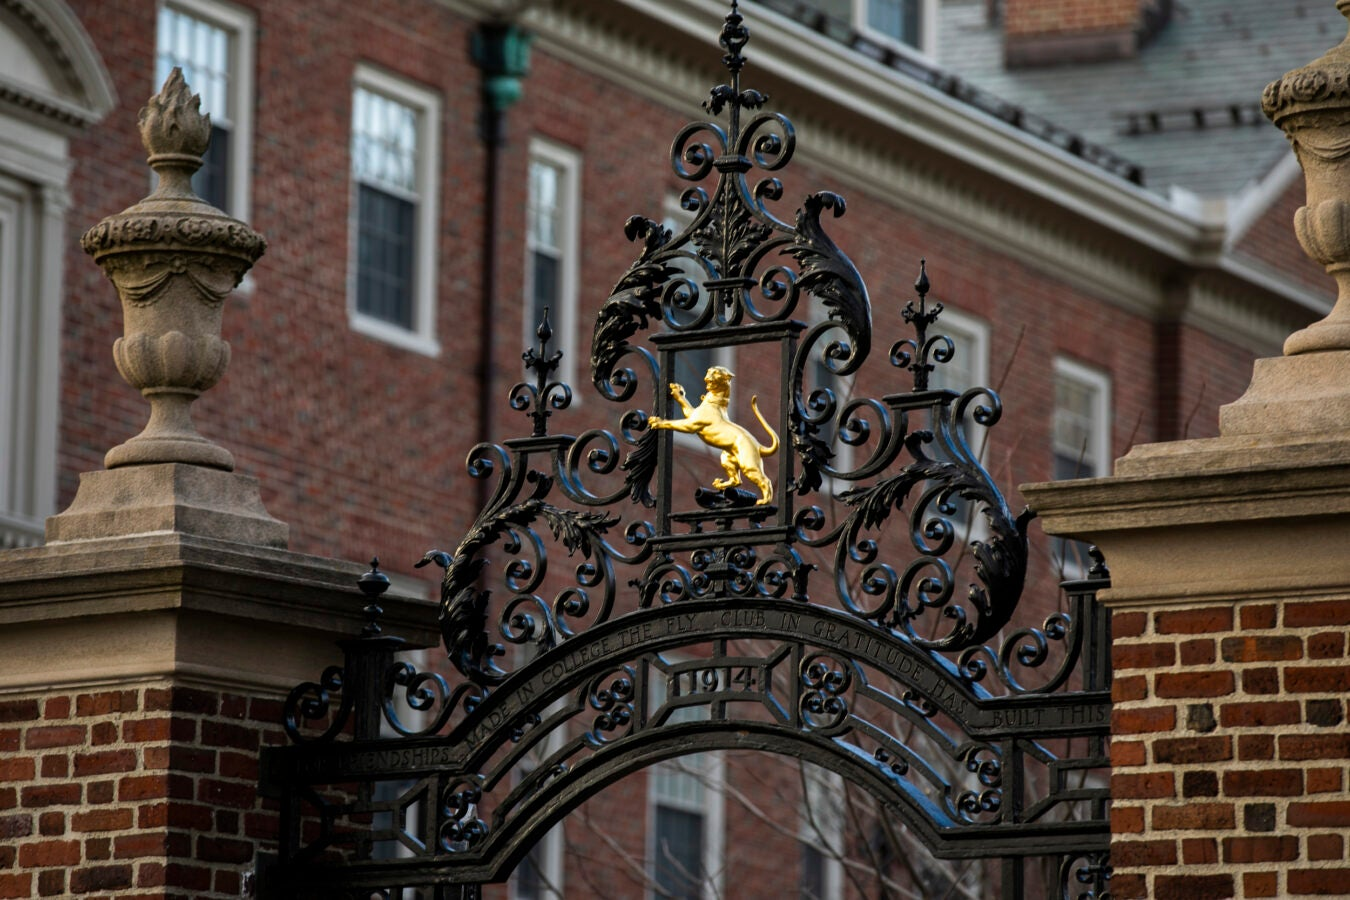 A golden panther embellishes the Fly Club Gate.